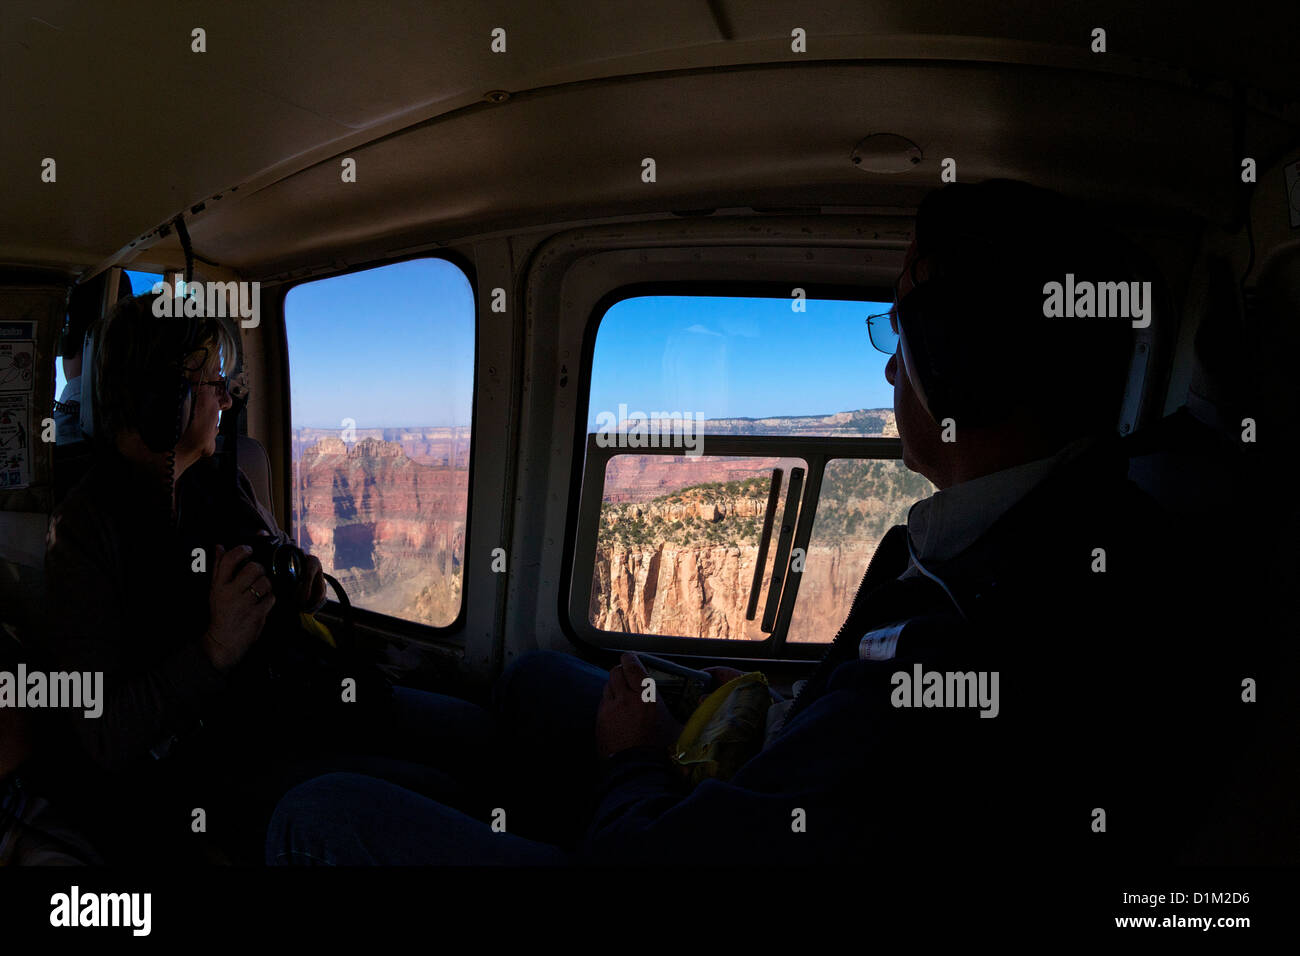 Tourists admire views of Grand Canyon from Papillon Helicopter, Grand Canyon National Park, Arizona, USA - Stock Image